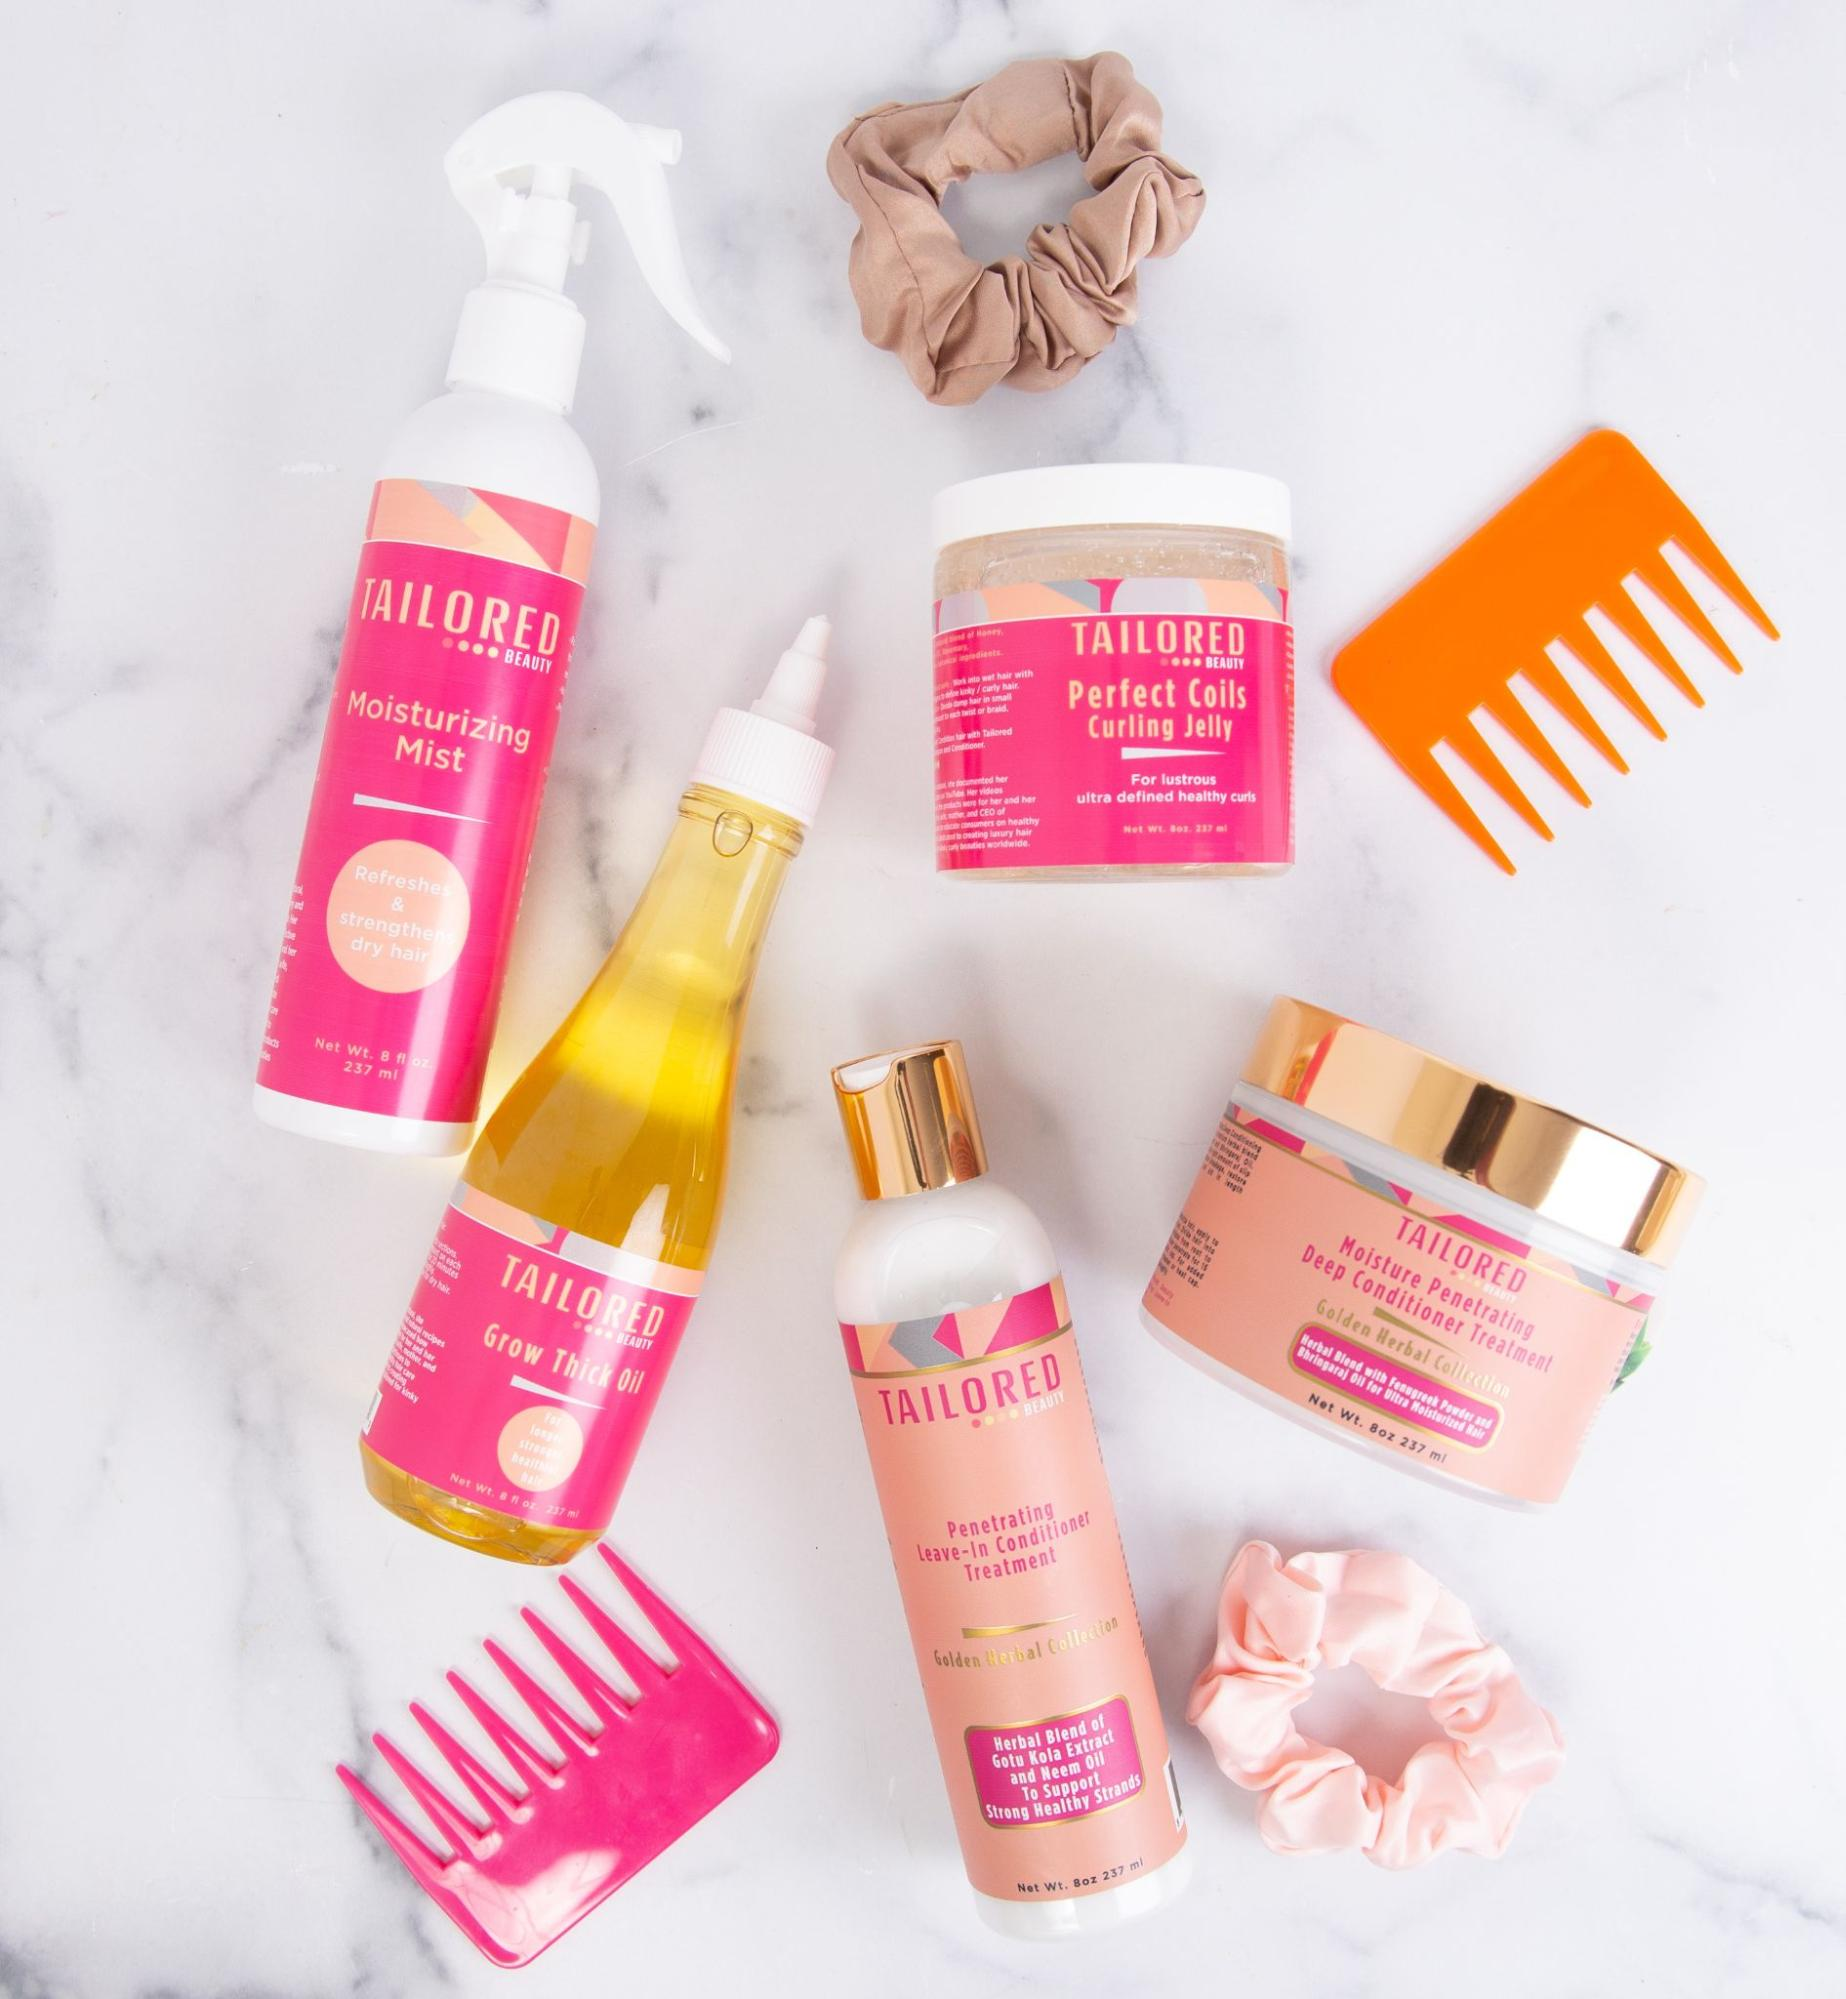 A flat lay of products by Tailored Beauty along with combs and scrunchies.